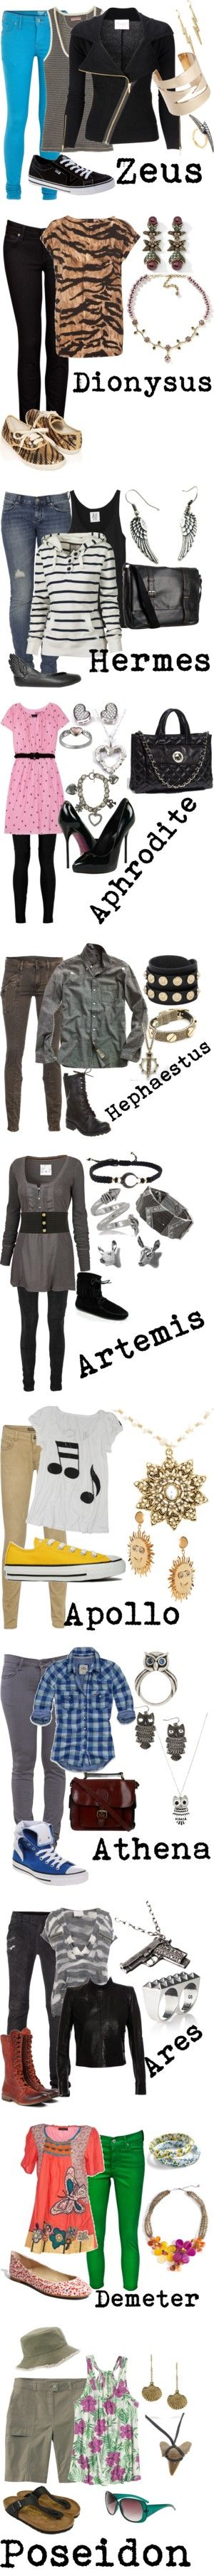 """""""Inspired by Percy Jackson"""" by achtungemilie ❤ liked on Polyvore"""